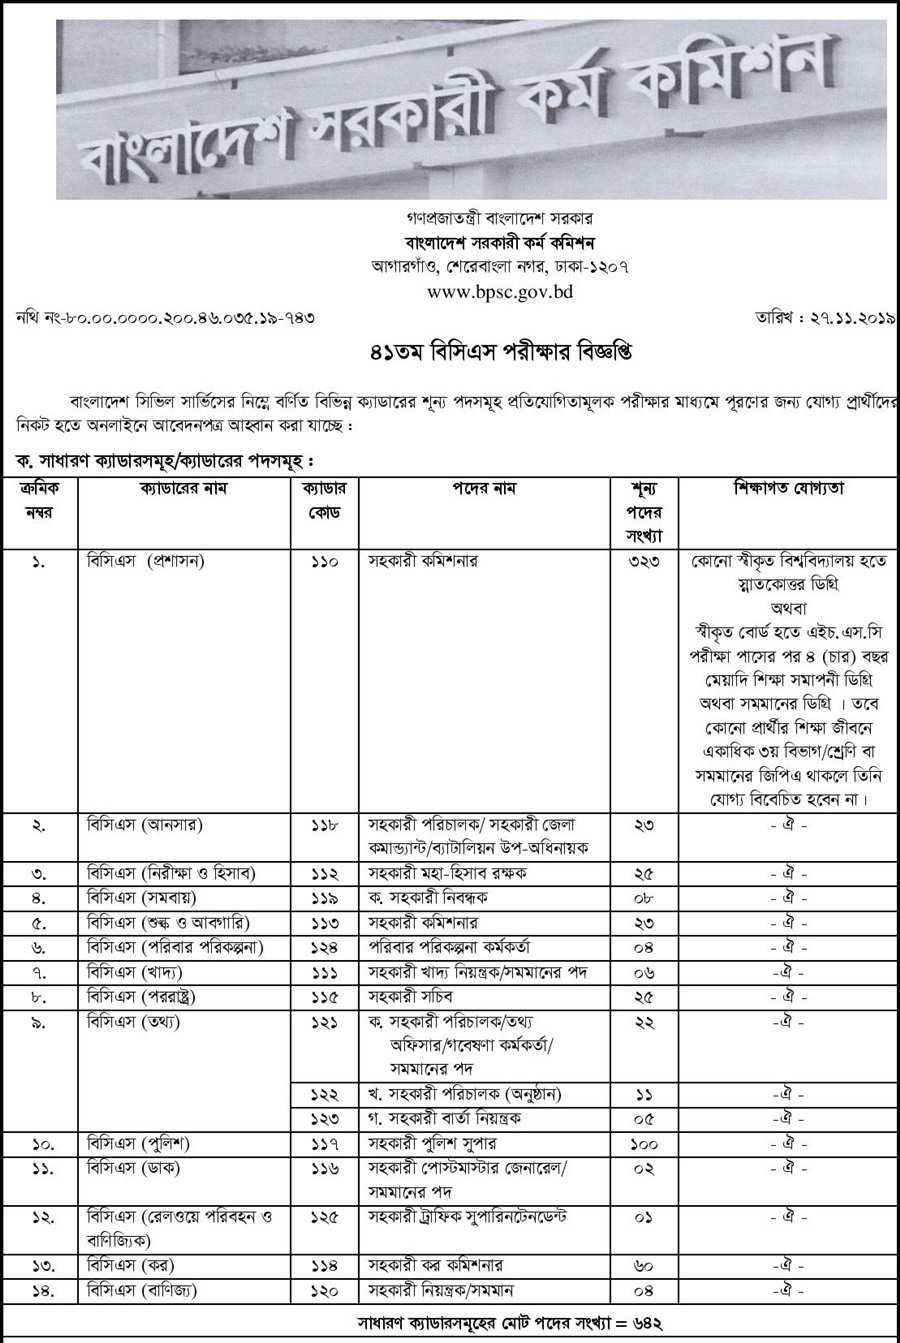 BPSC Teletalk Apply Admit Card 2019